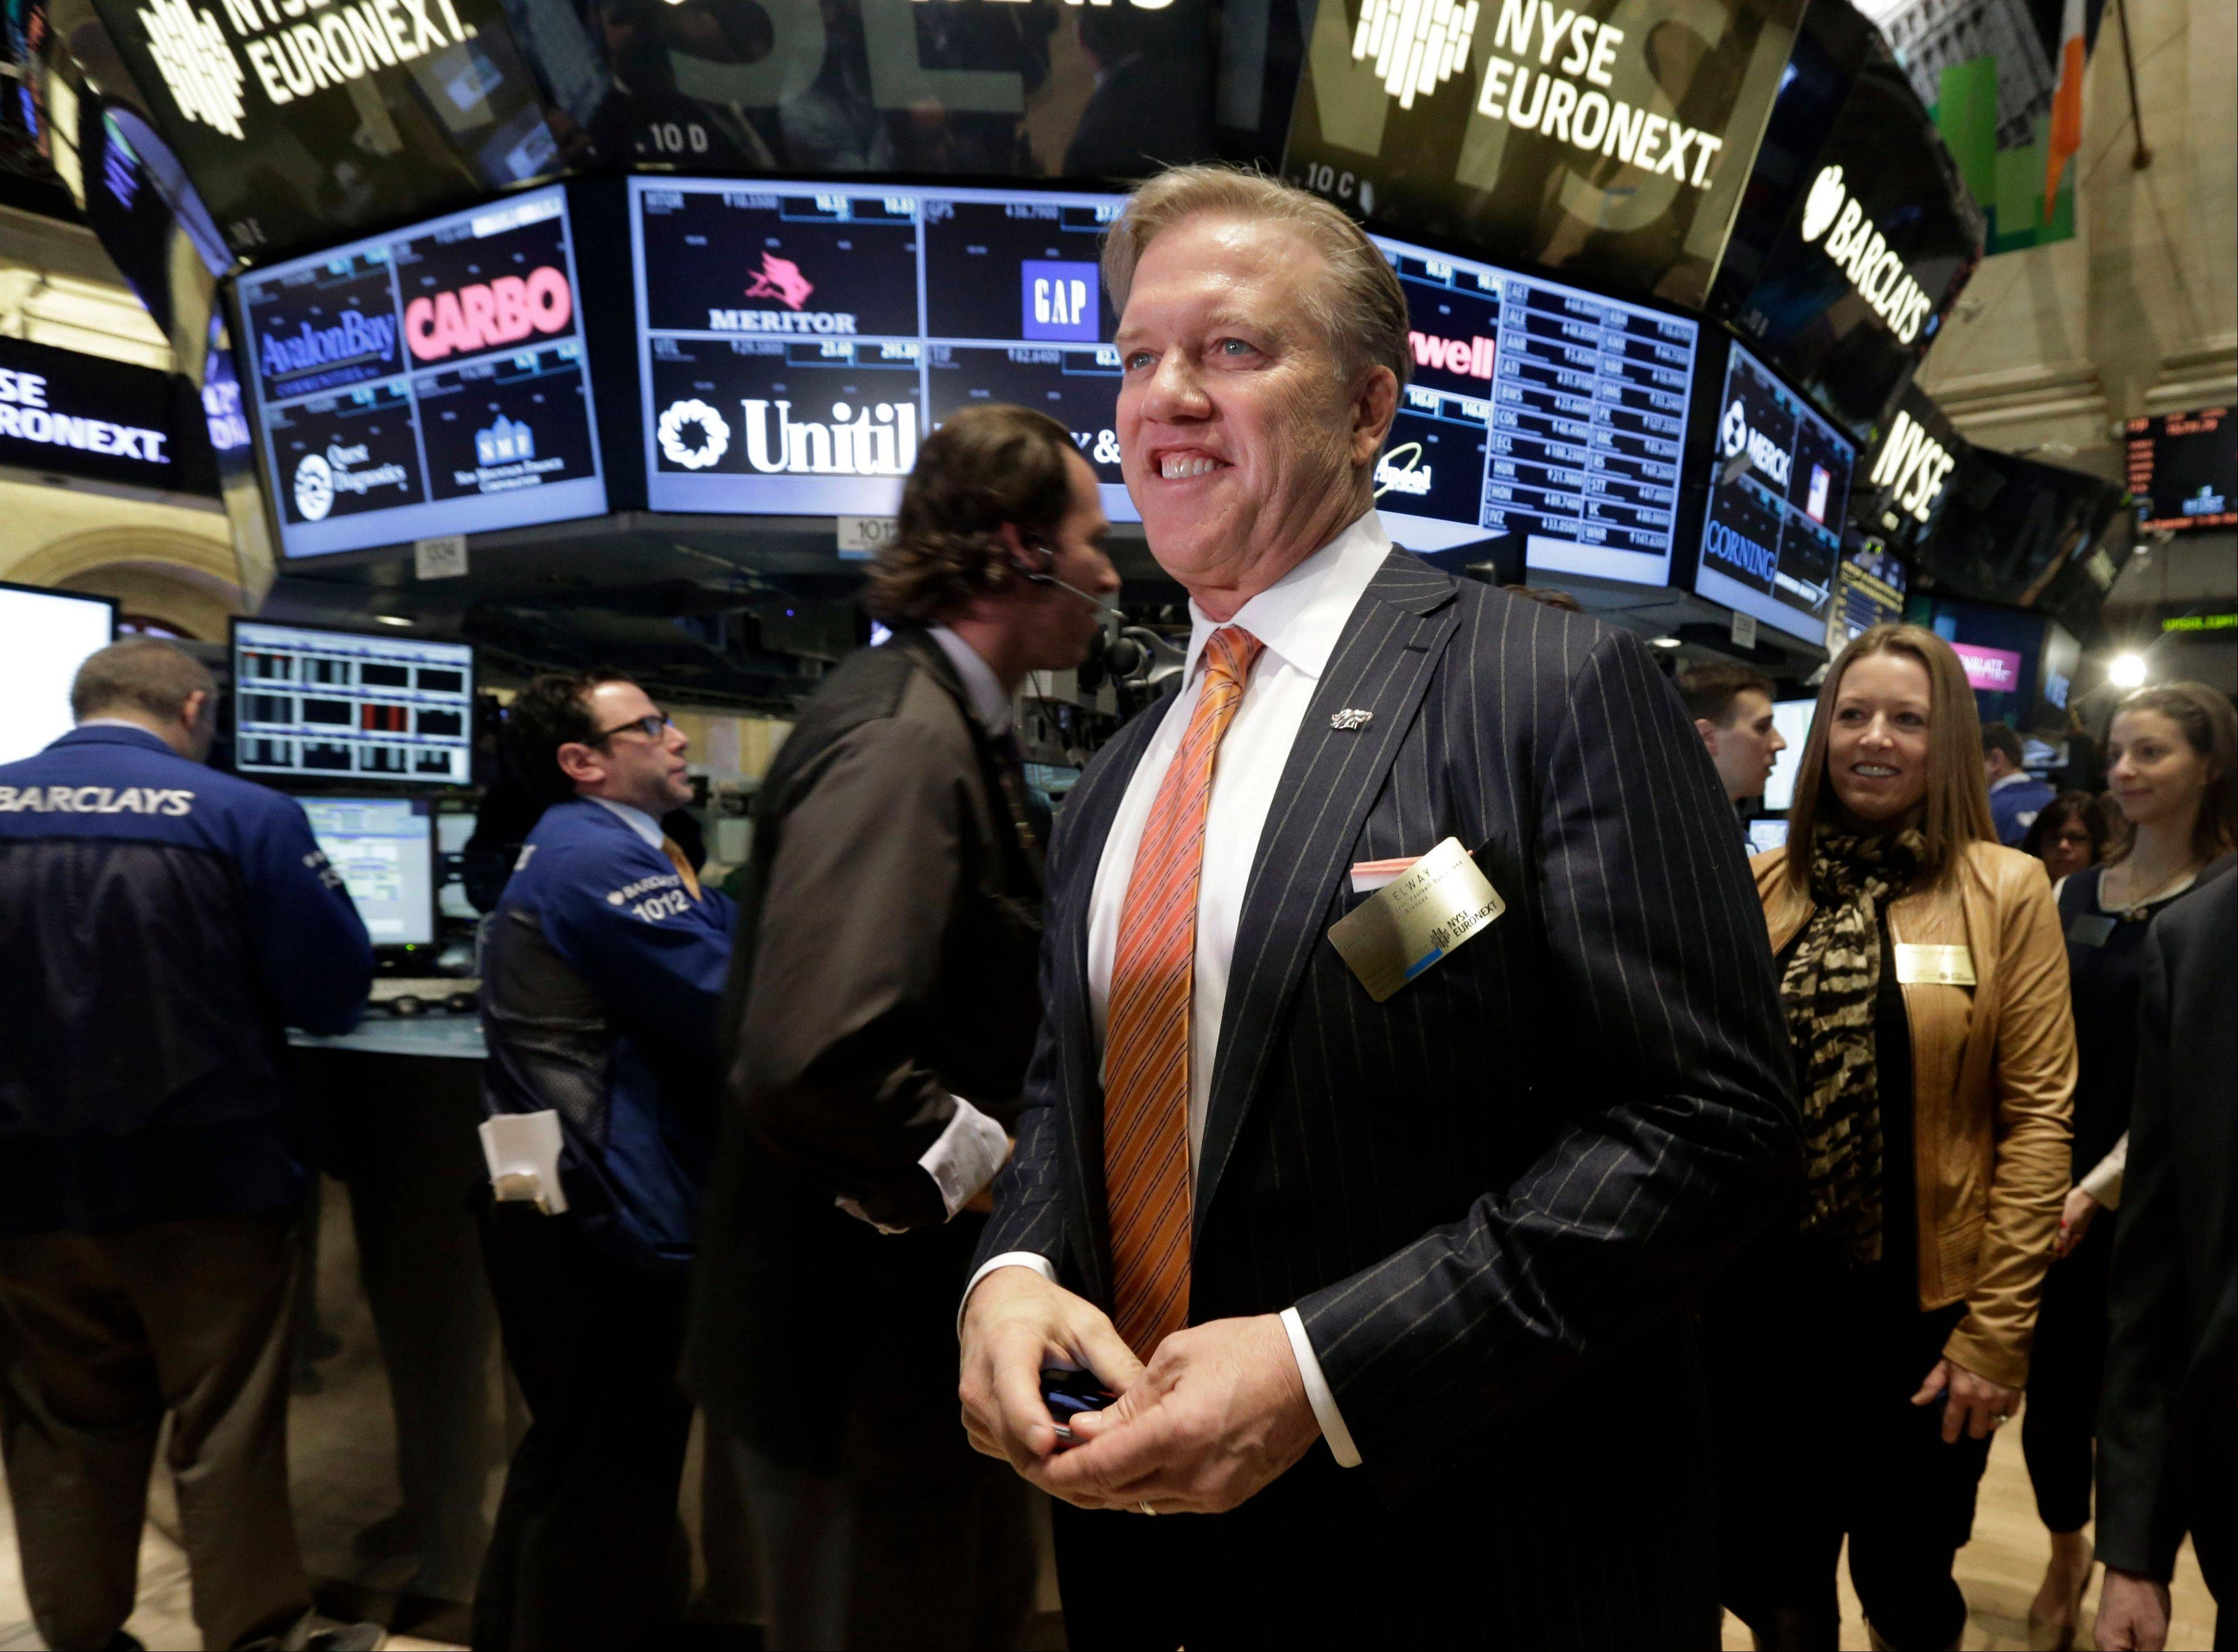 Denver Broncos Executive VP of Football Operations John Elway walks the trading floor before New York Stock Exchange opening bell ceremonies Thursday.